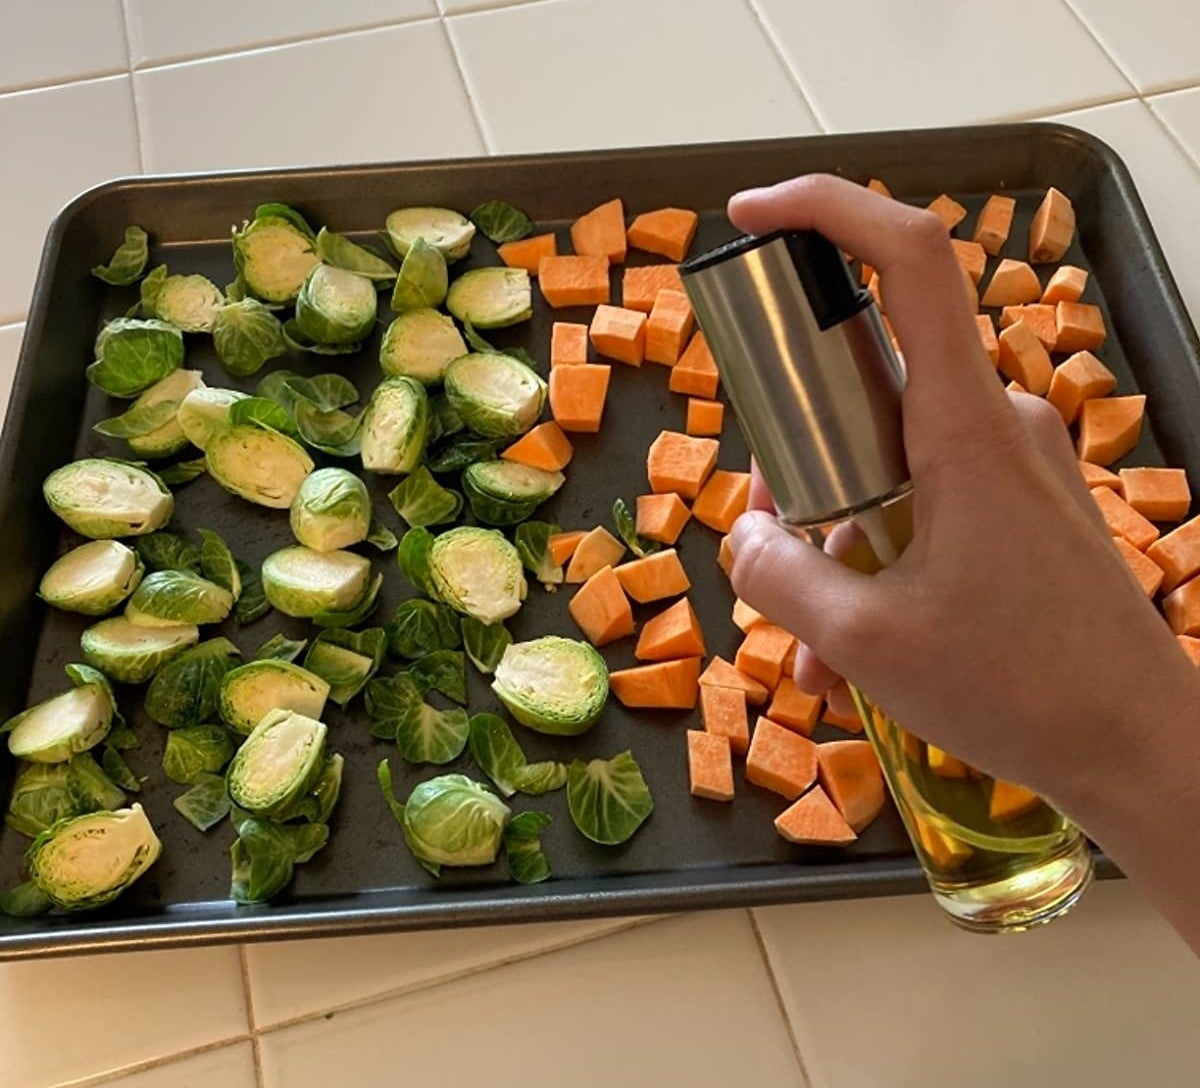 reviewer spraying veggies with olive oil using the spray bottle